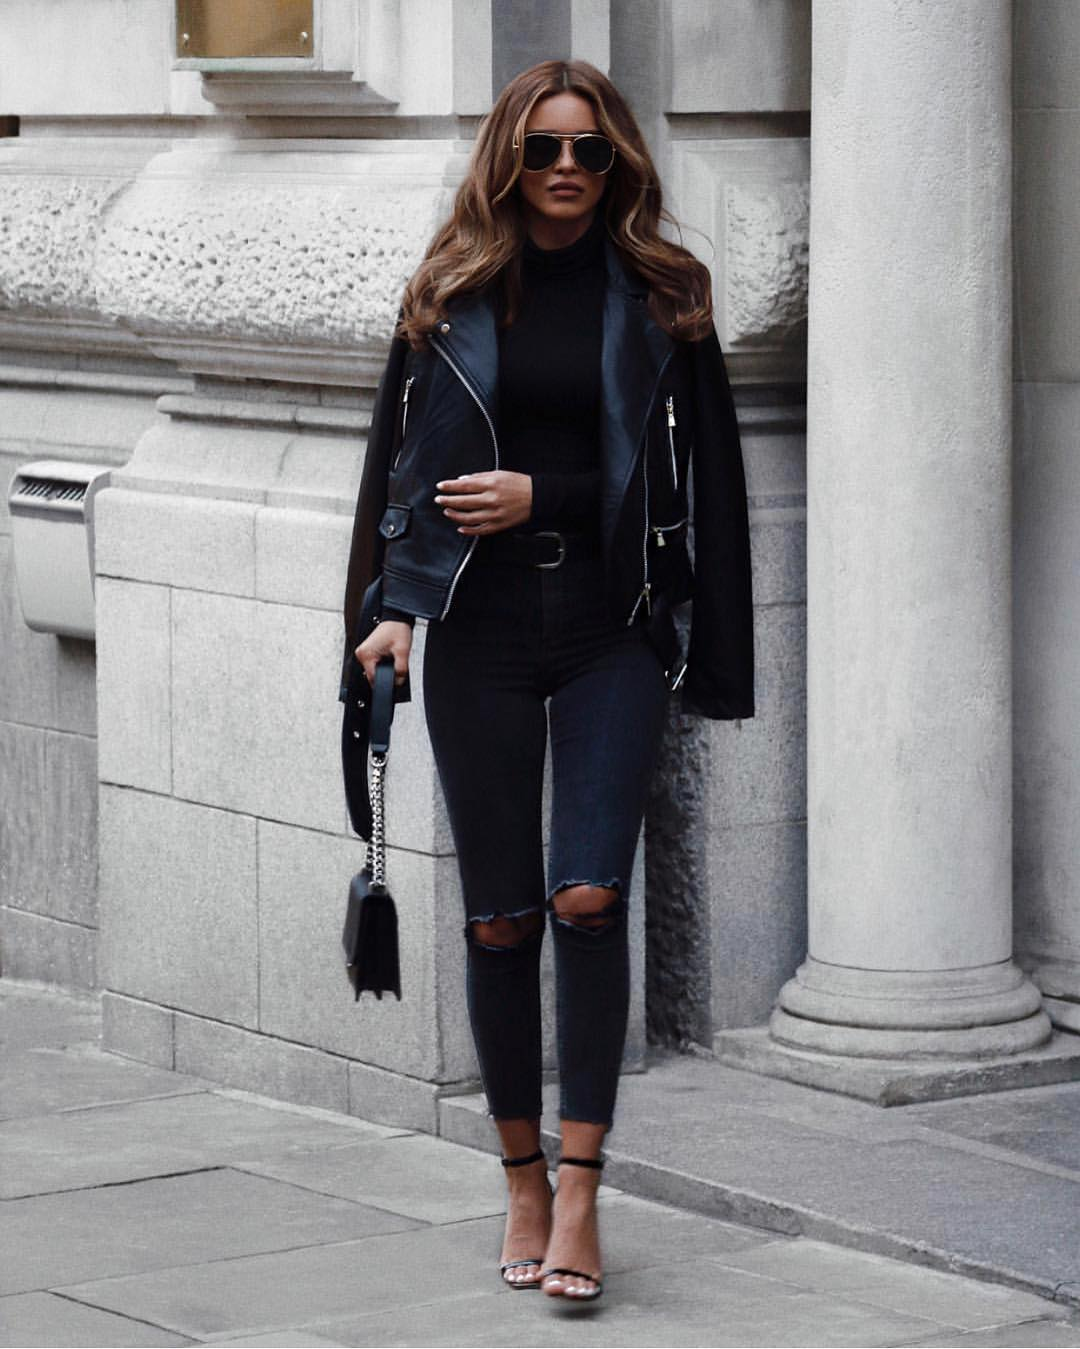 All Black Street Look: Leather Jacket, Bodysuit, Ripped Jeans And Sandals 2019